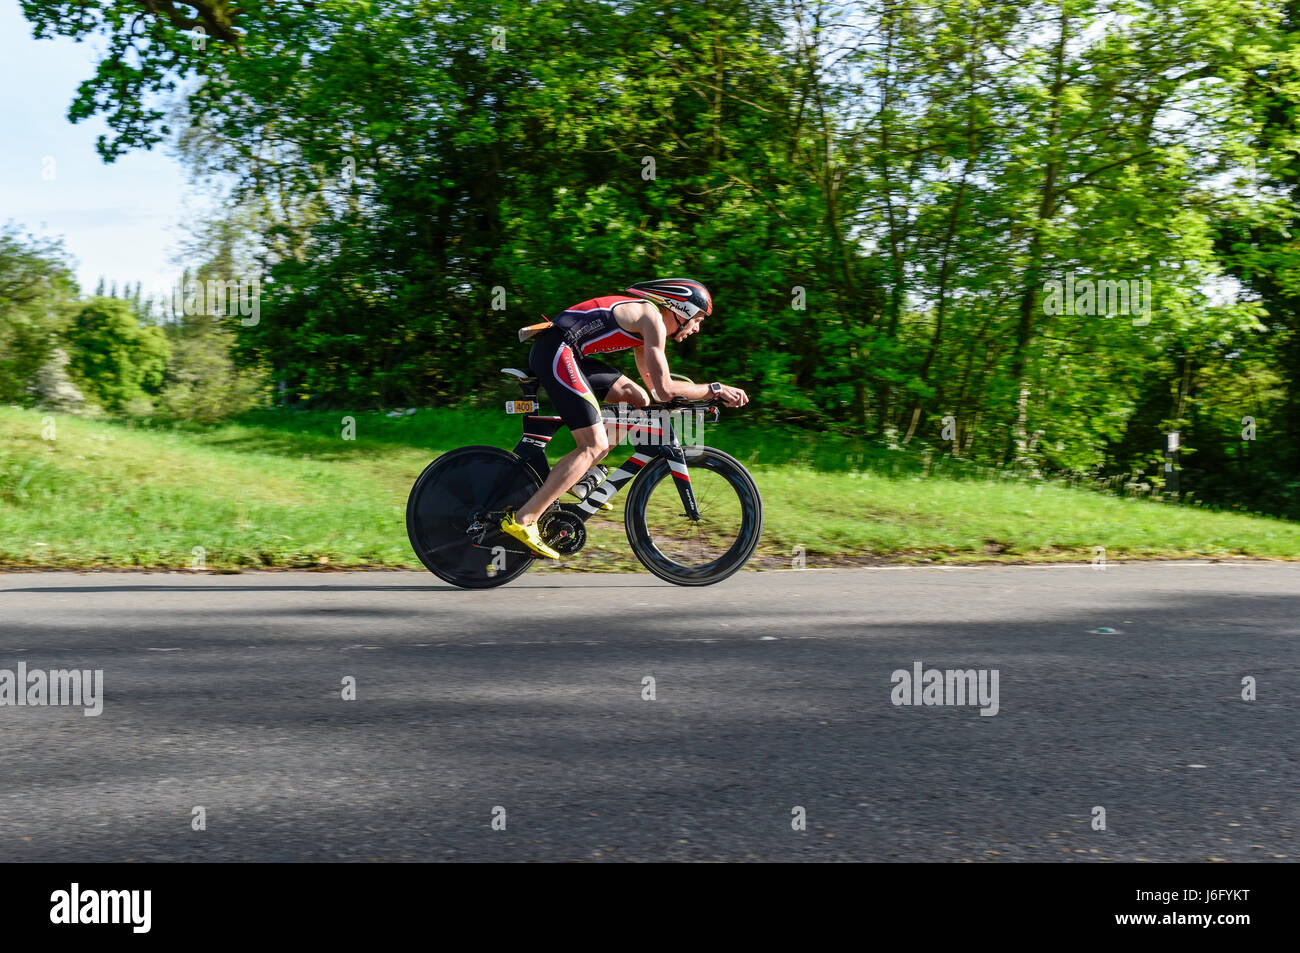 Southwell, UK. 21st May, 2017. Cyclists taking part in the Outlaw half.The event consists of a 1.2m swim, 56m bike, - Stock Image